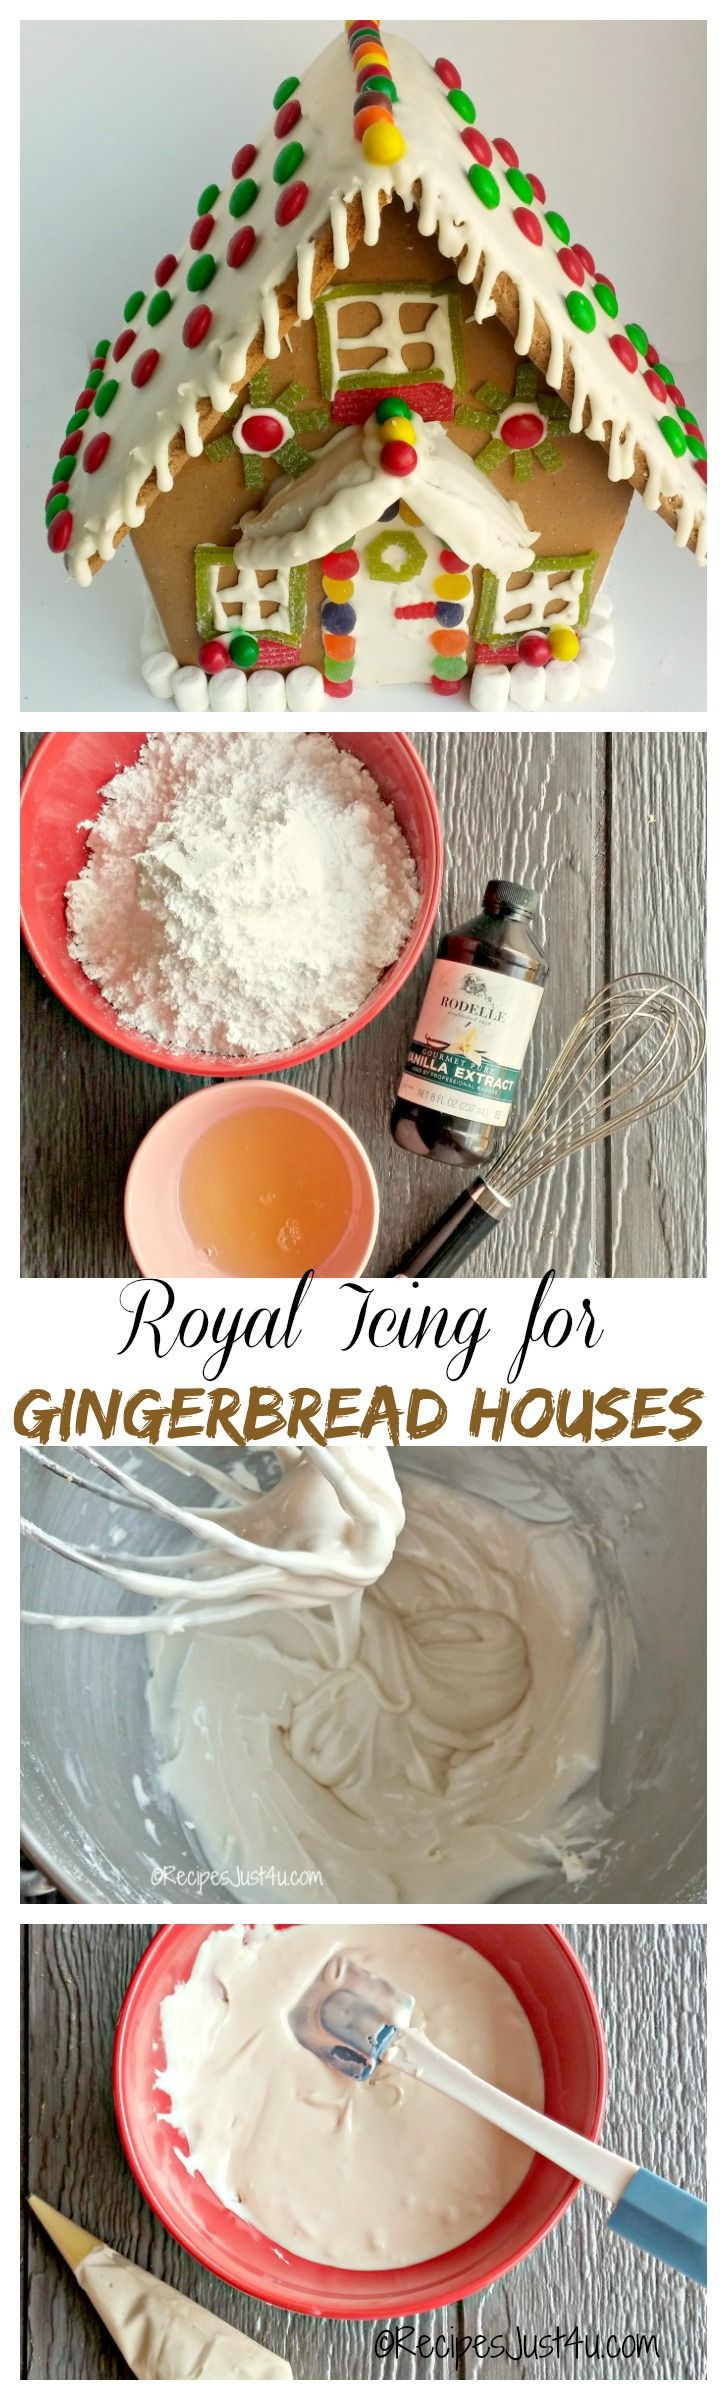 To make a great gingerbread house, you need an icing that holds well. This recipe for Royal icing is easy to make and perfect for the job.  recipesjust4u.com